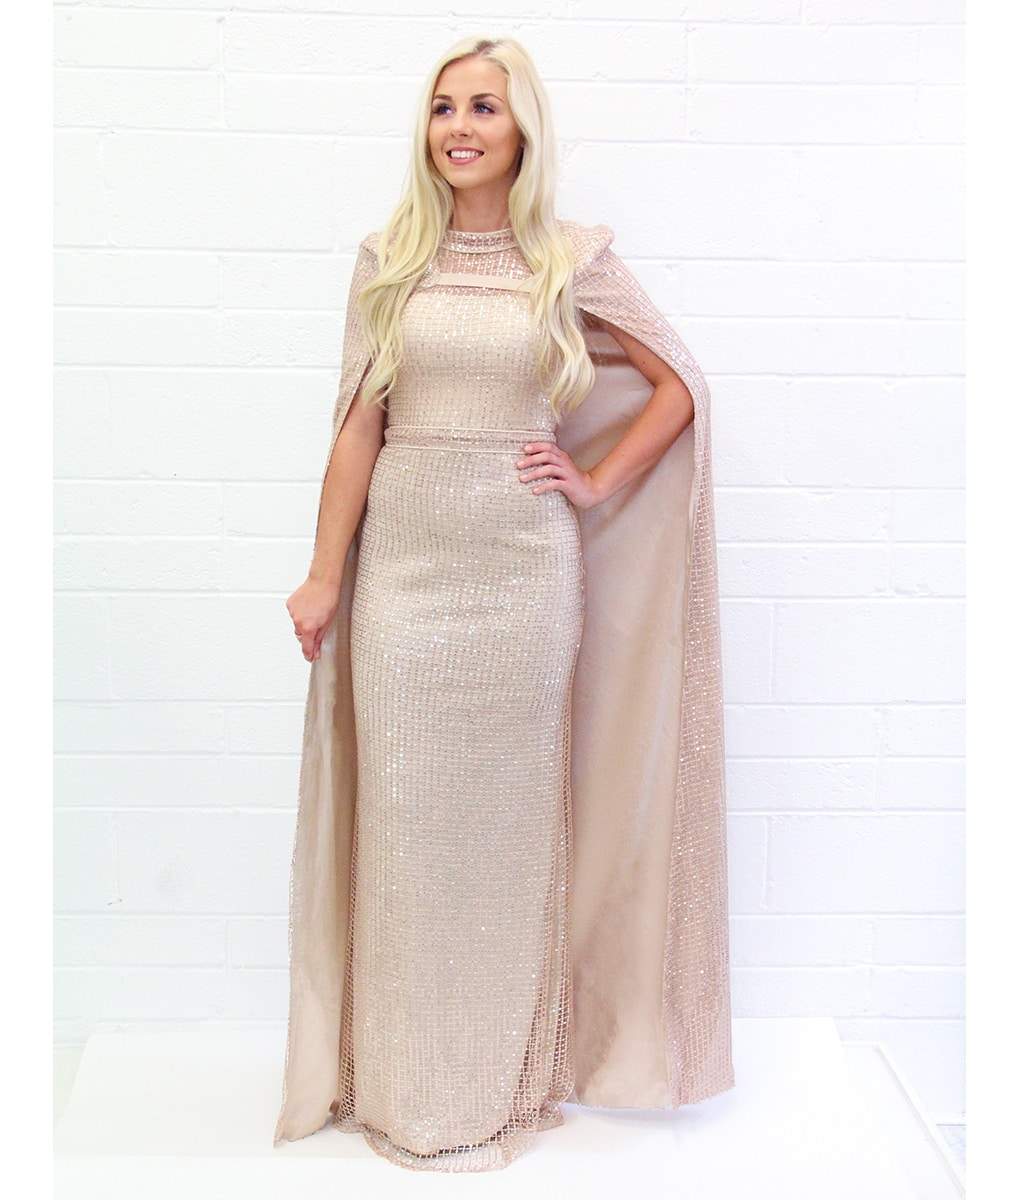 Alila-Champagne-Sequin-Cape-glam-dress-bariano